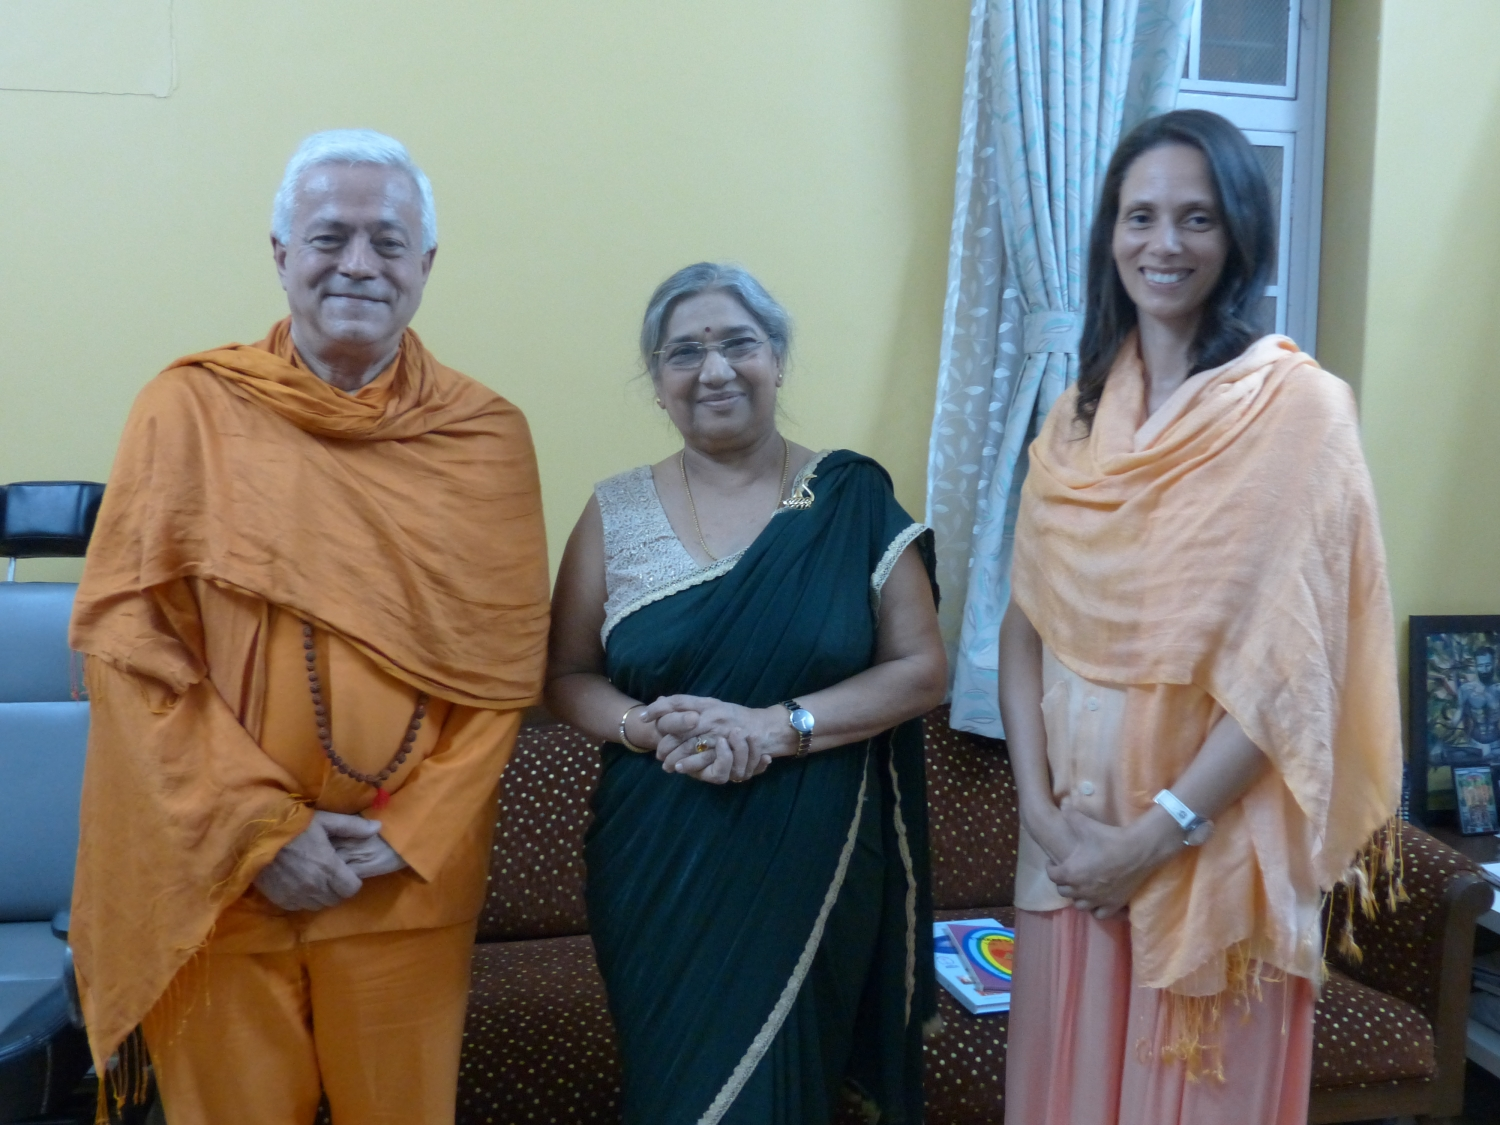 Con Smt. Hansaji Jayadeva Yogendra - The Yoga Institute of Santa Cruz, Mumbai, India - 2016, enero